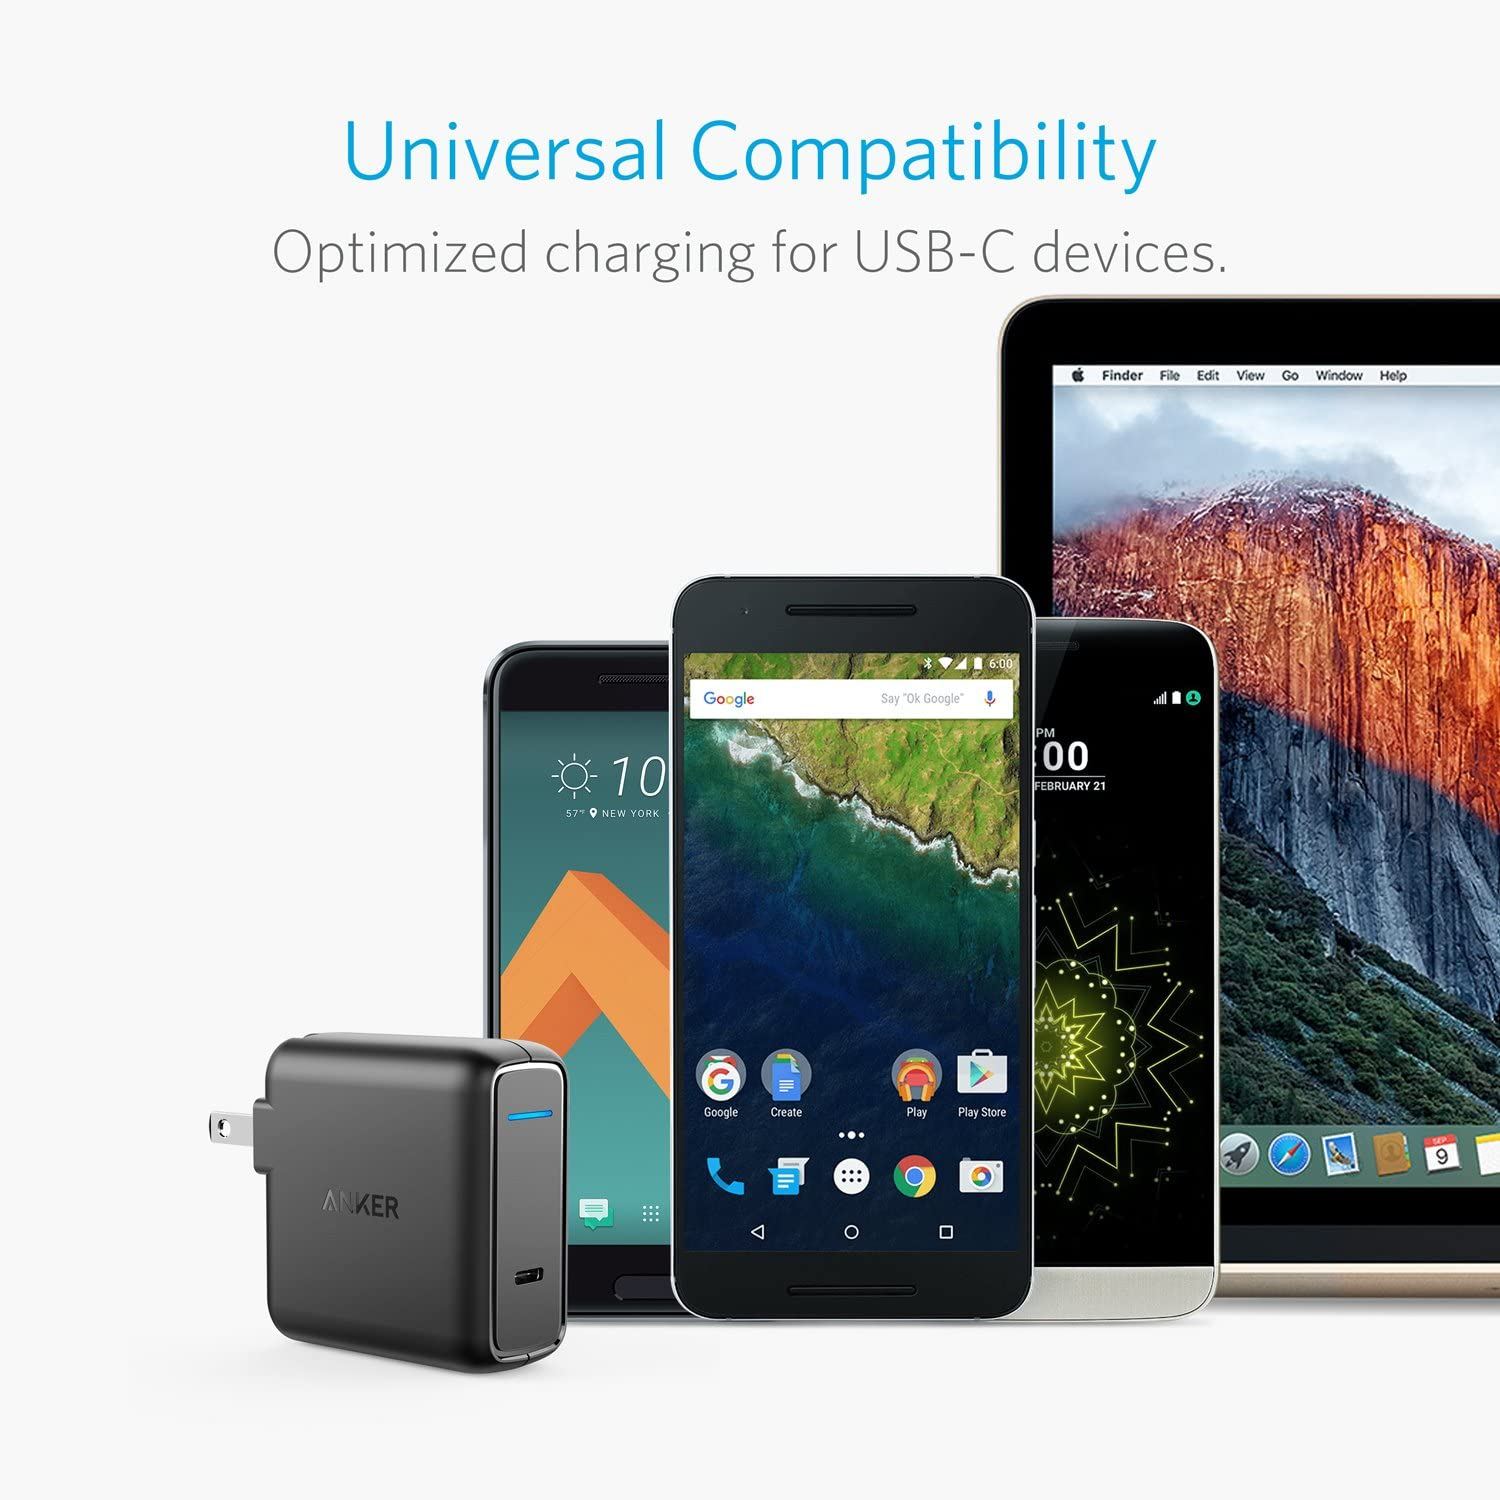 Top 10 Best USB PD Chargers (2021): Reviews & Buying Guide 31